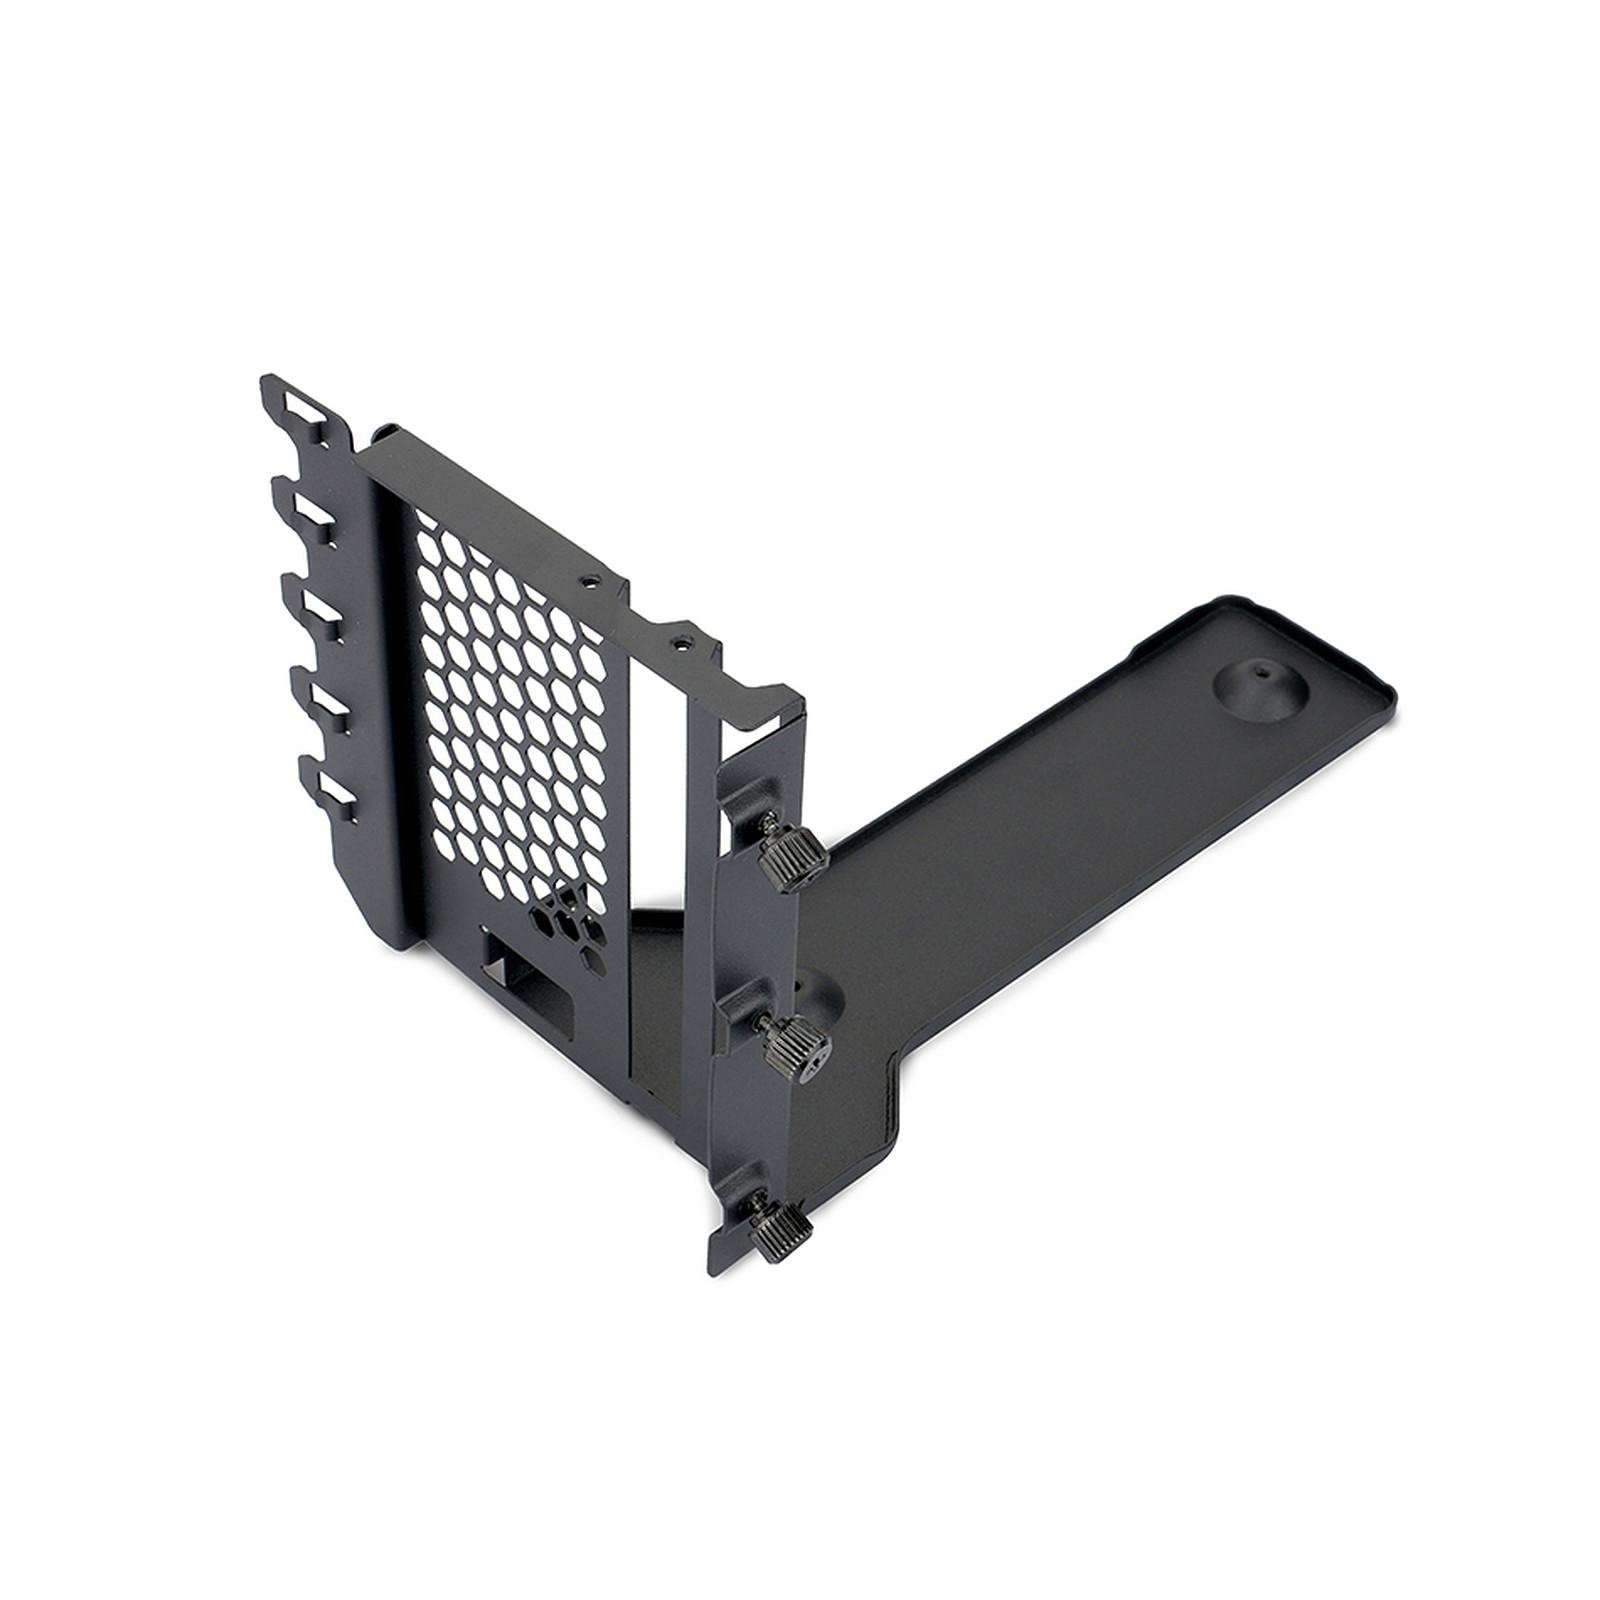 Phanteks Gpu Interne Bracket Vertical Connectique Sur xQdBeorCWE